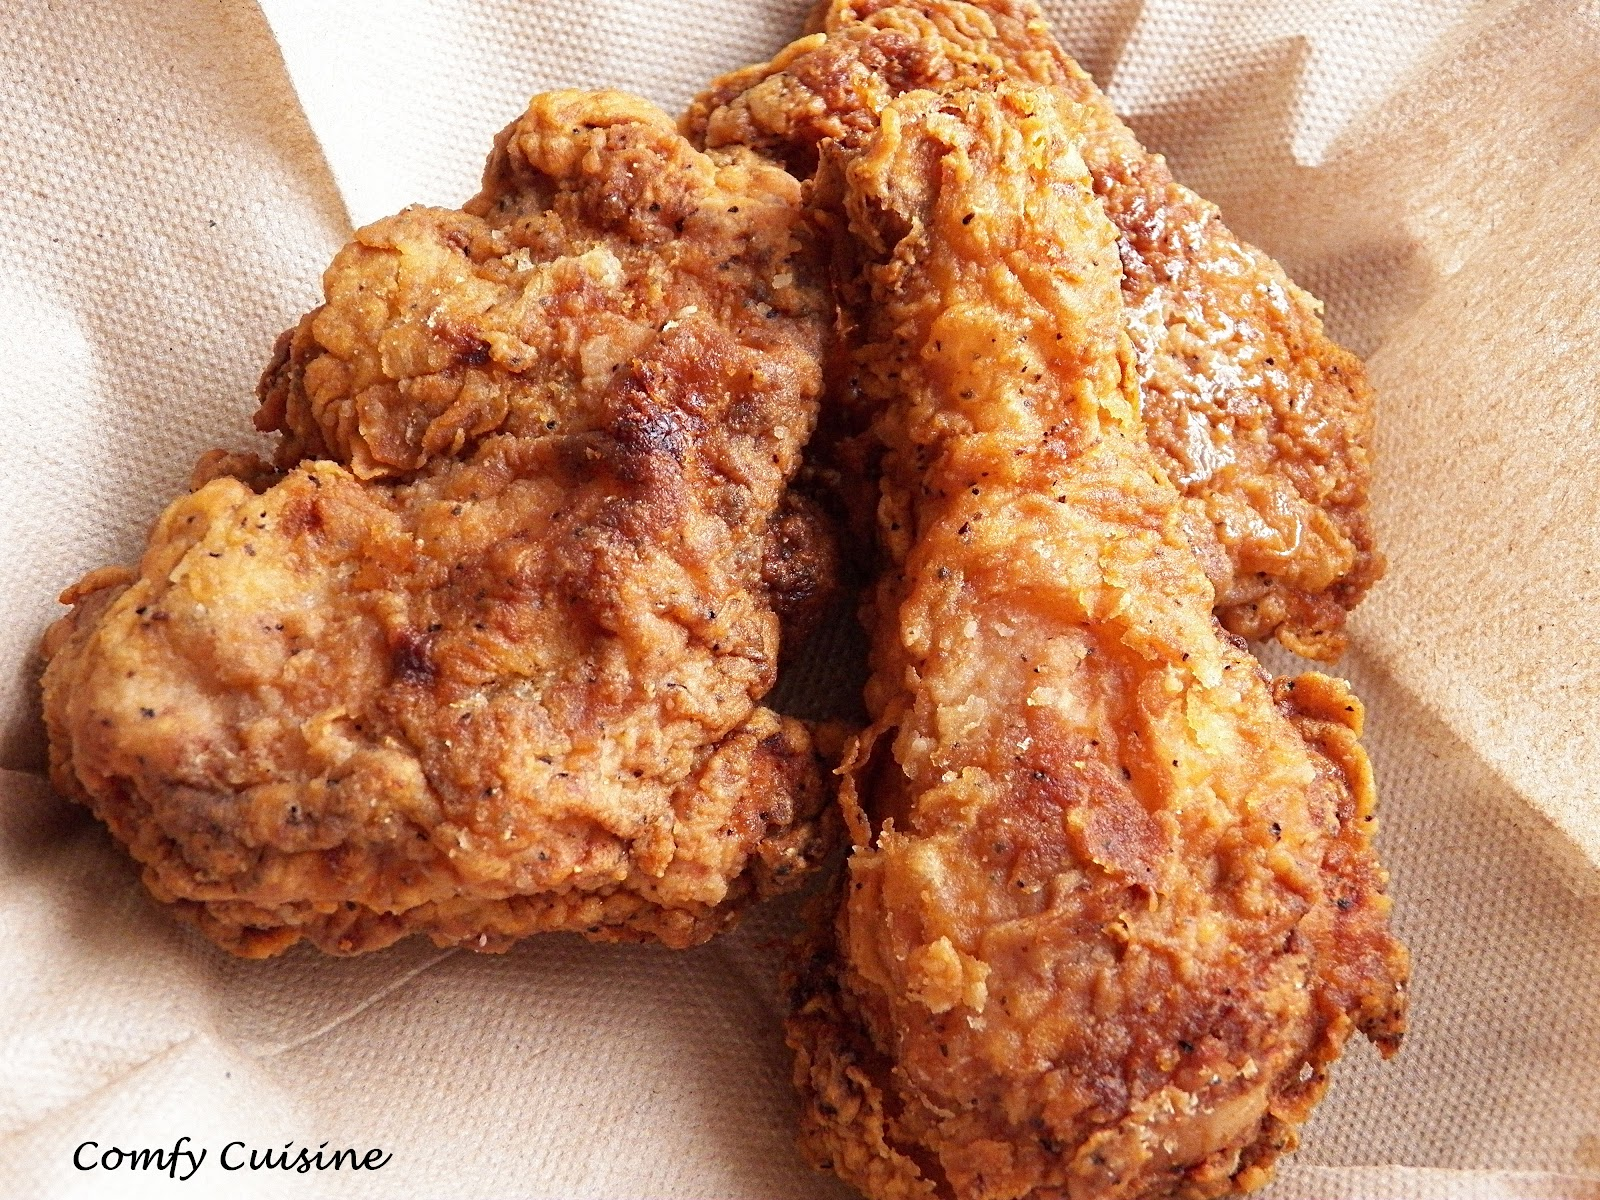 Comfy Cuisine: Perfect Buttermilk Skillet Fried Chicken